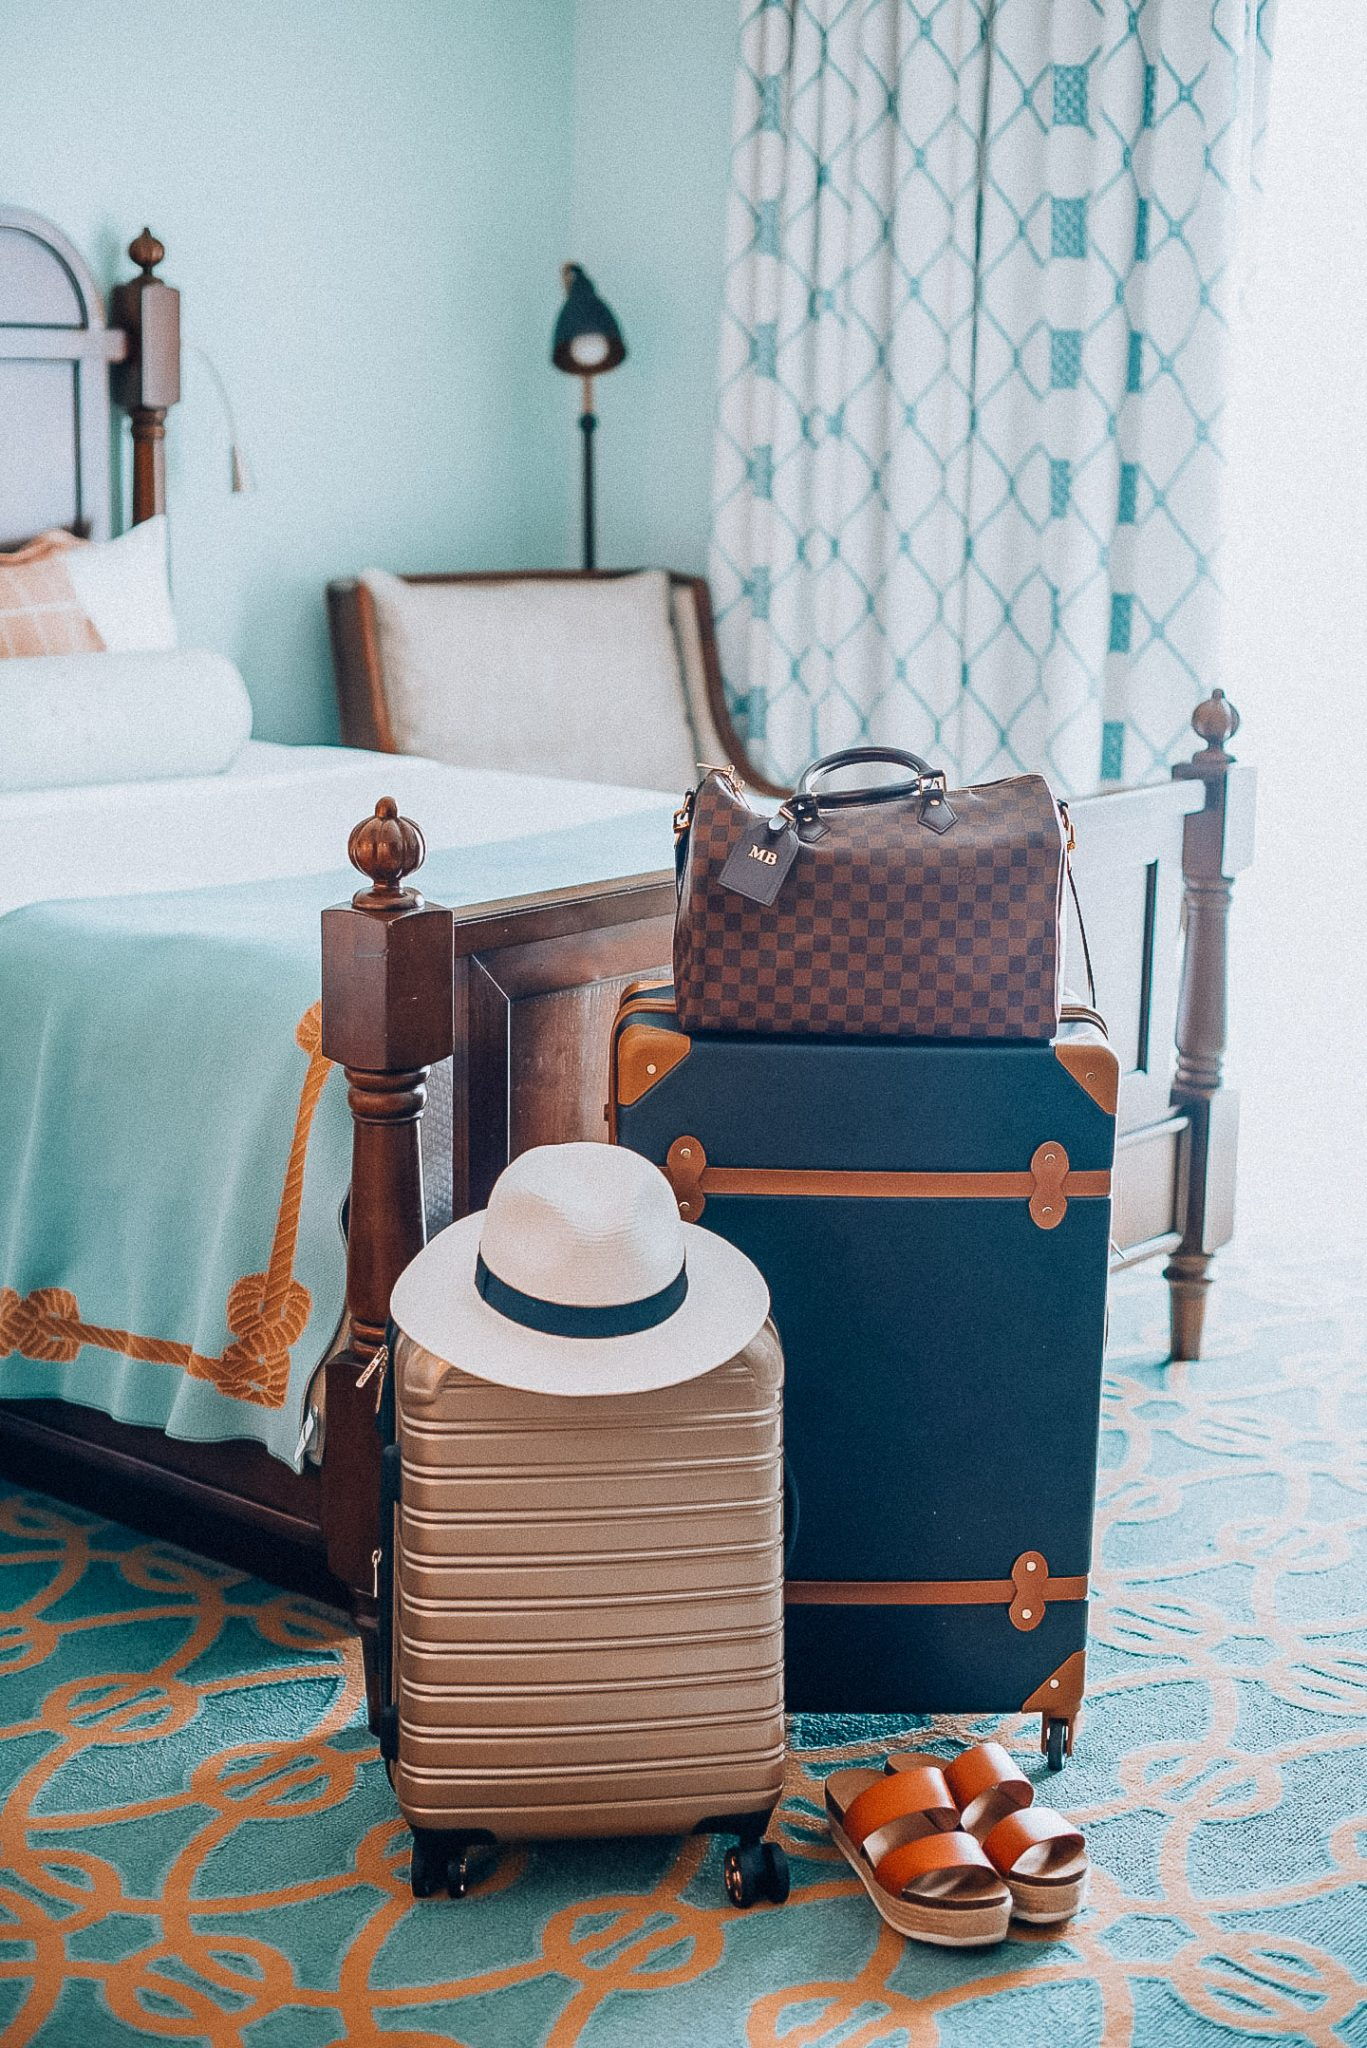 The Henderson Beach Resort and Spa, Destin FL, The Glitter Gospel, 30A travel guide, travel destinations, beach yoga, spa treatments, brunch at the beach, Salamander Resorts